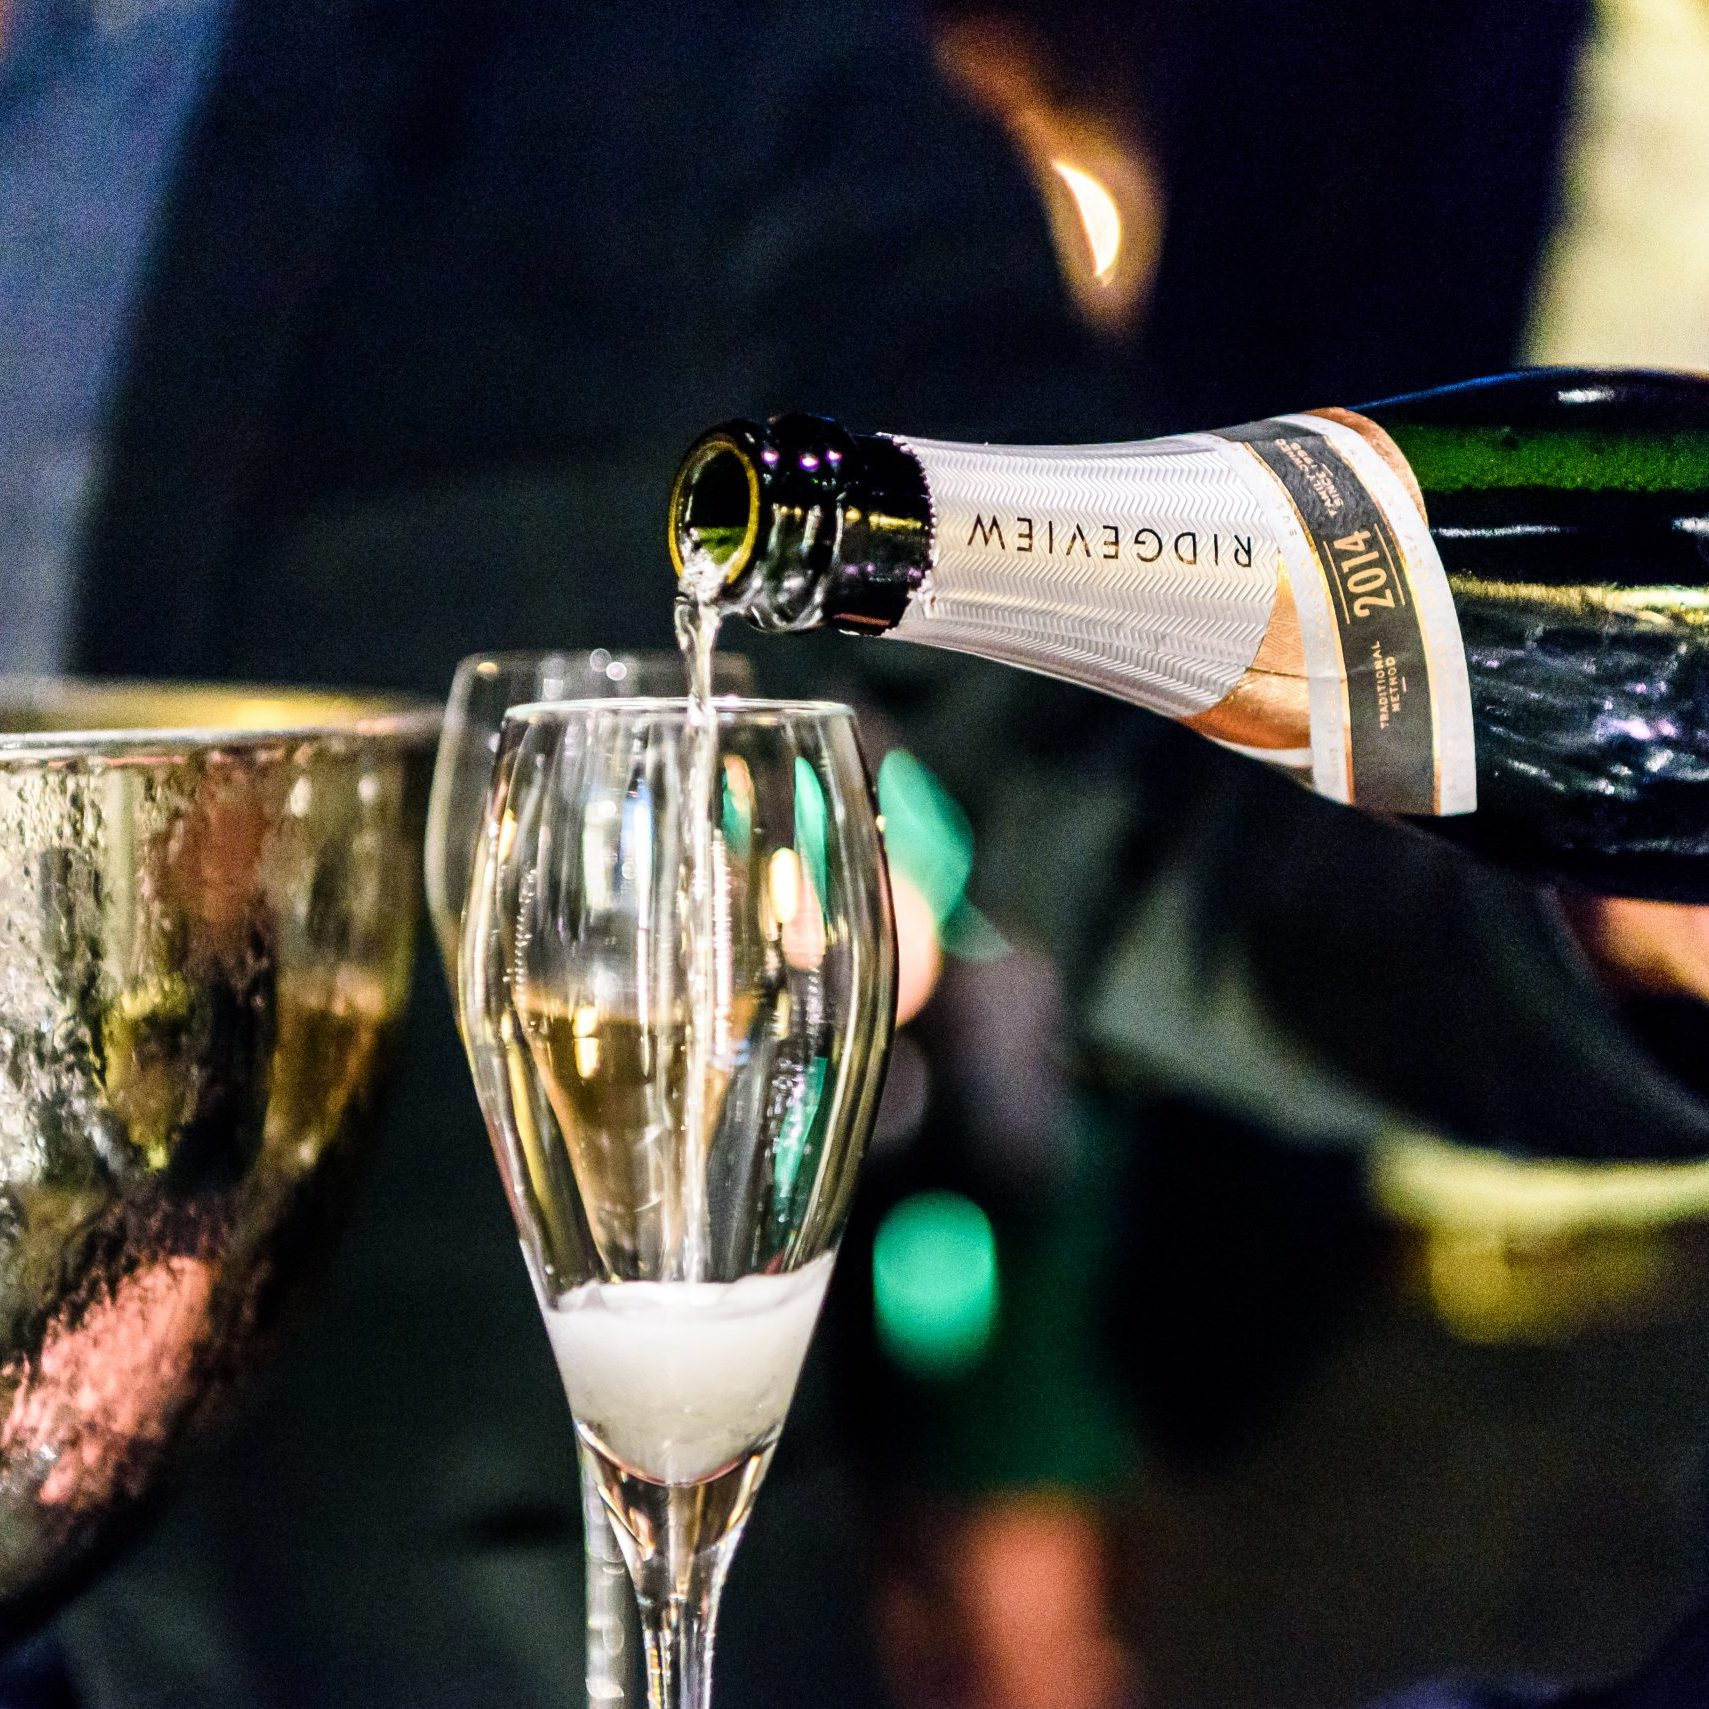 Ridgeview Wine Estate launches their new label at The Savoy photo ©Julia Claxton